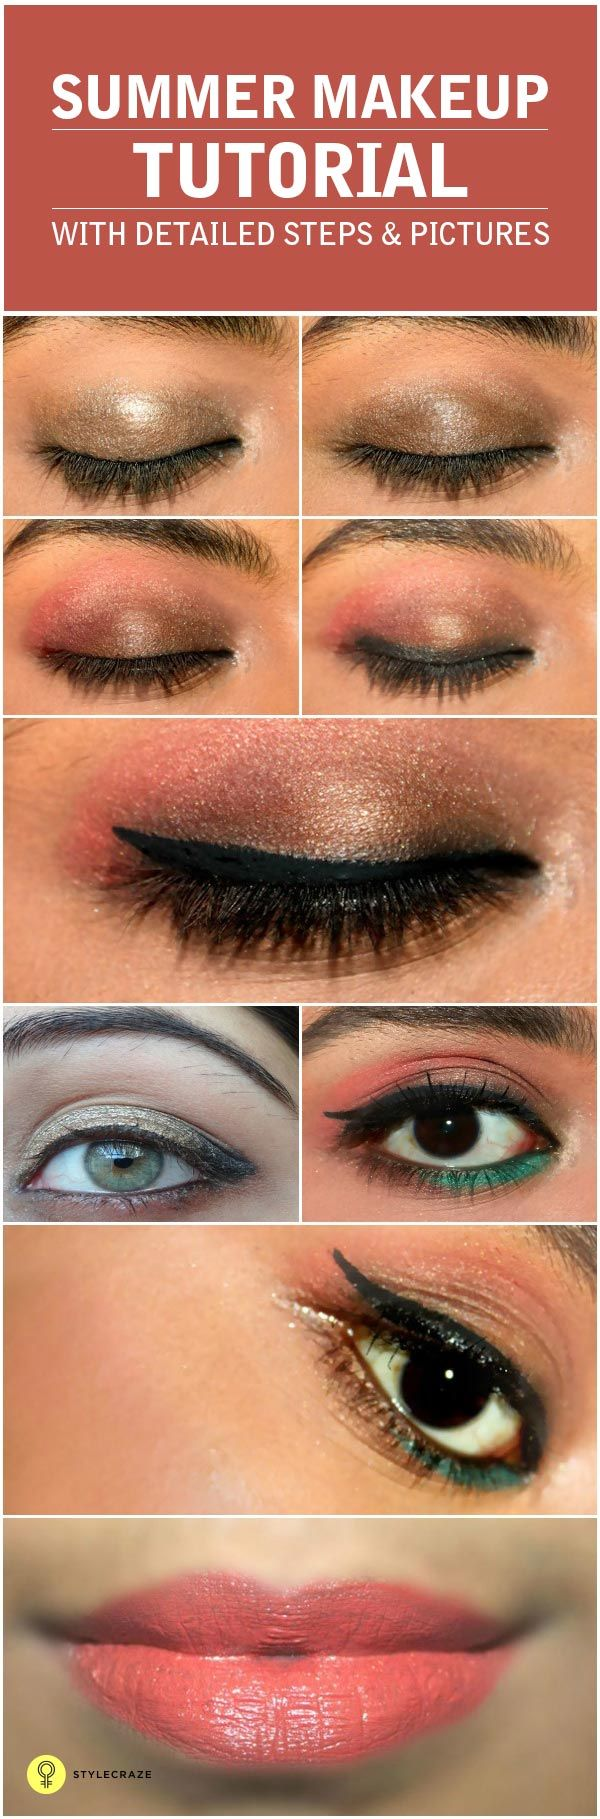 It's really annoying when your makeup starts melting during the summer months. In this summer lighten up your makeup by following this ... #makeup